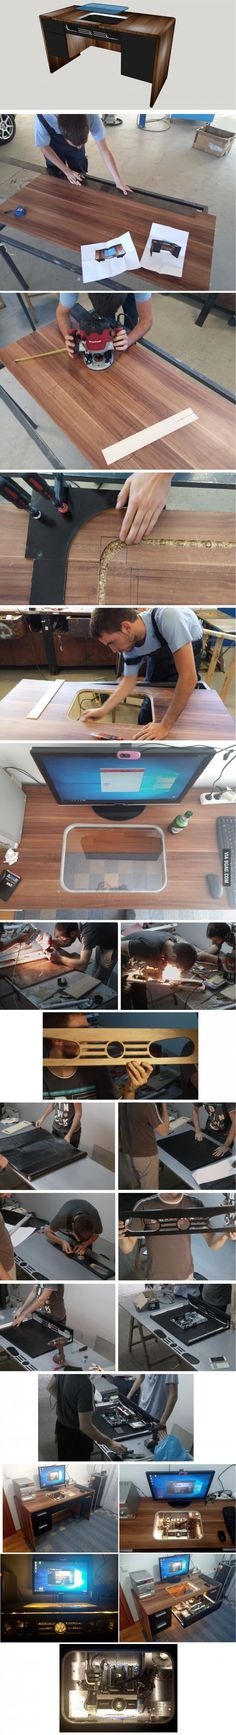 """DIY Project """"PC in Table"""" (Video link in comments)"""